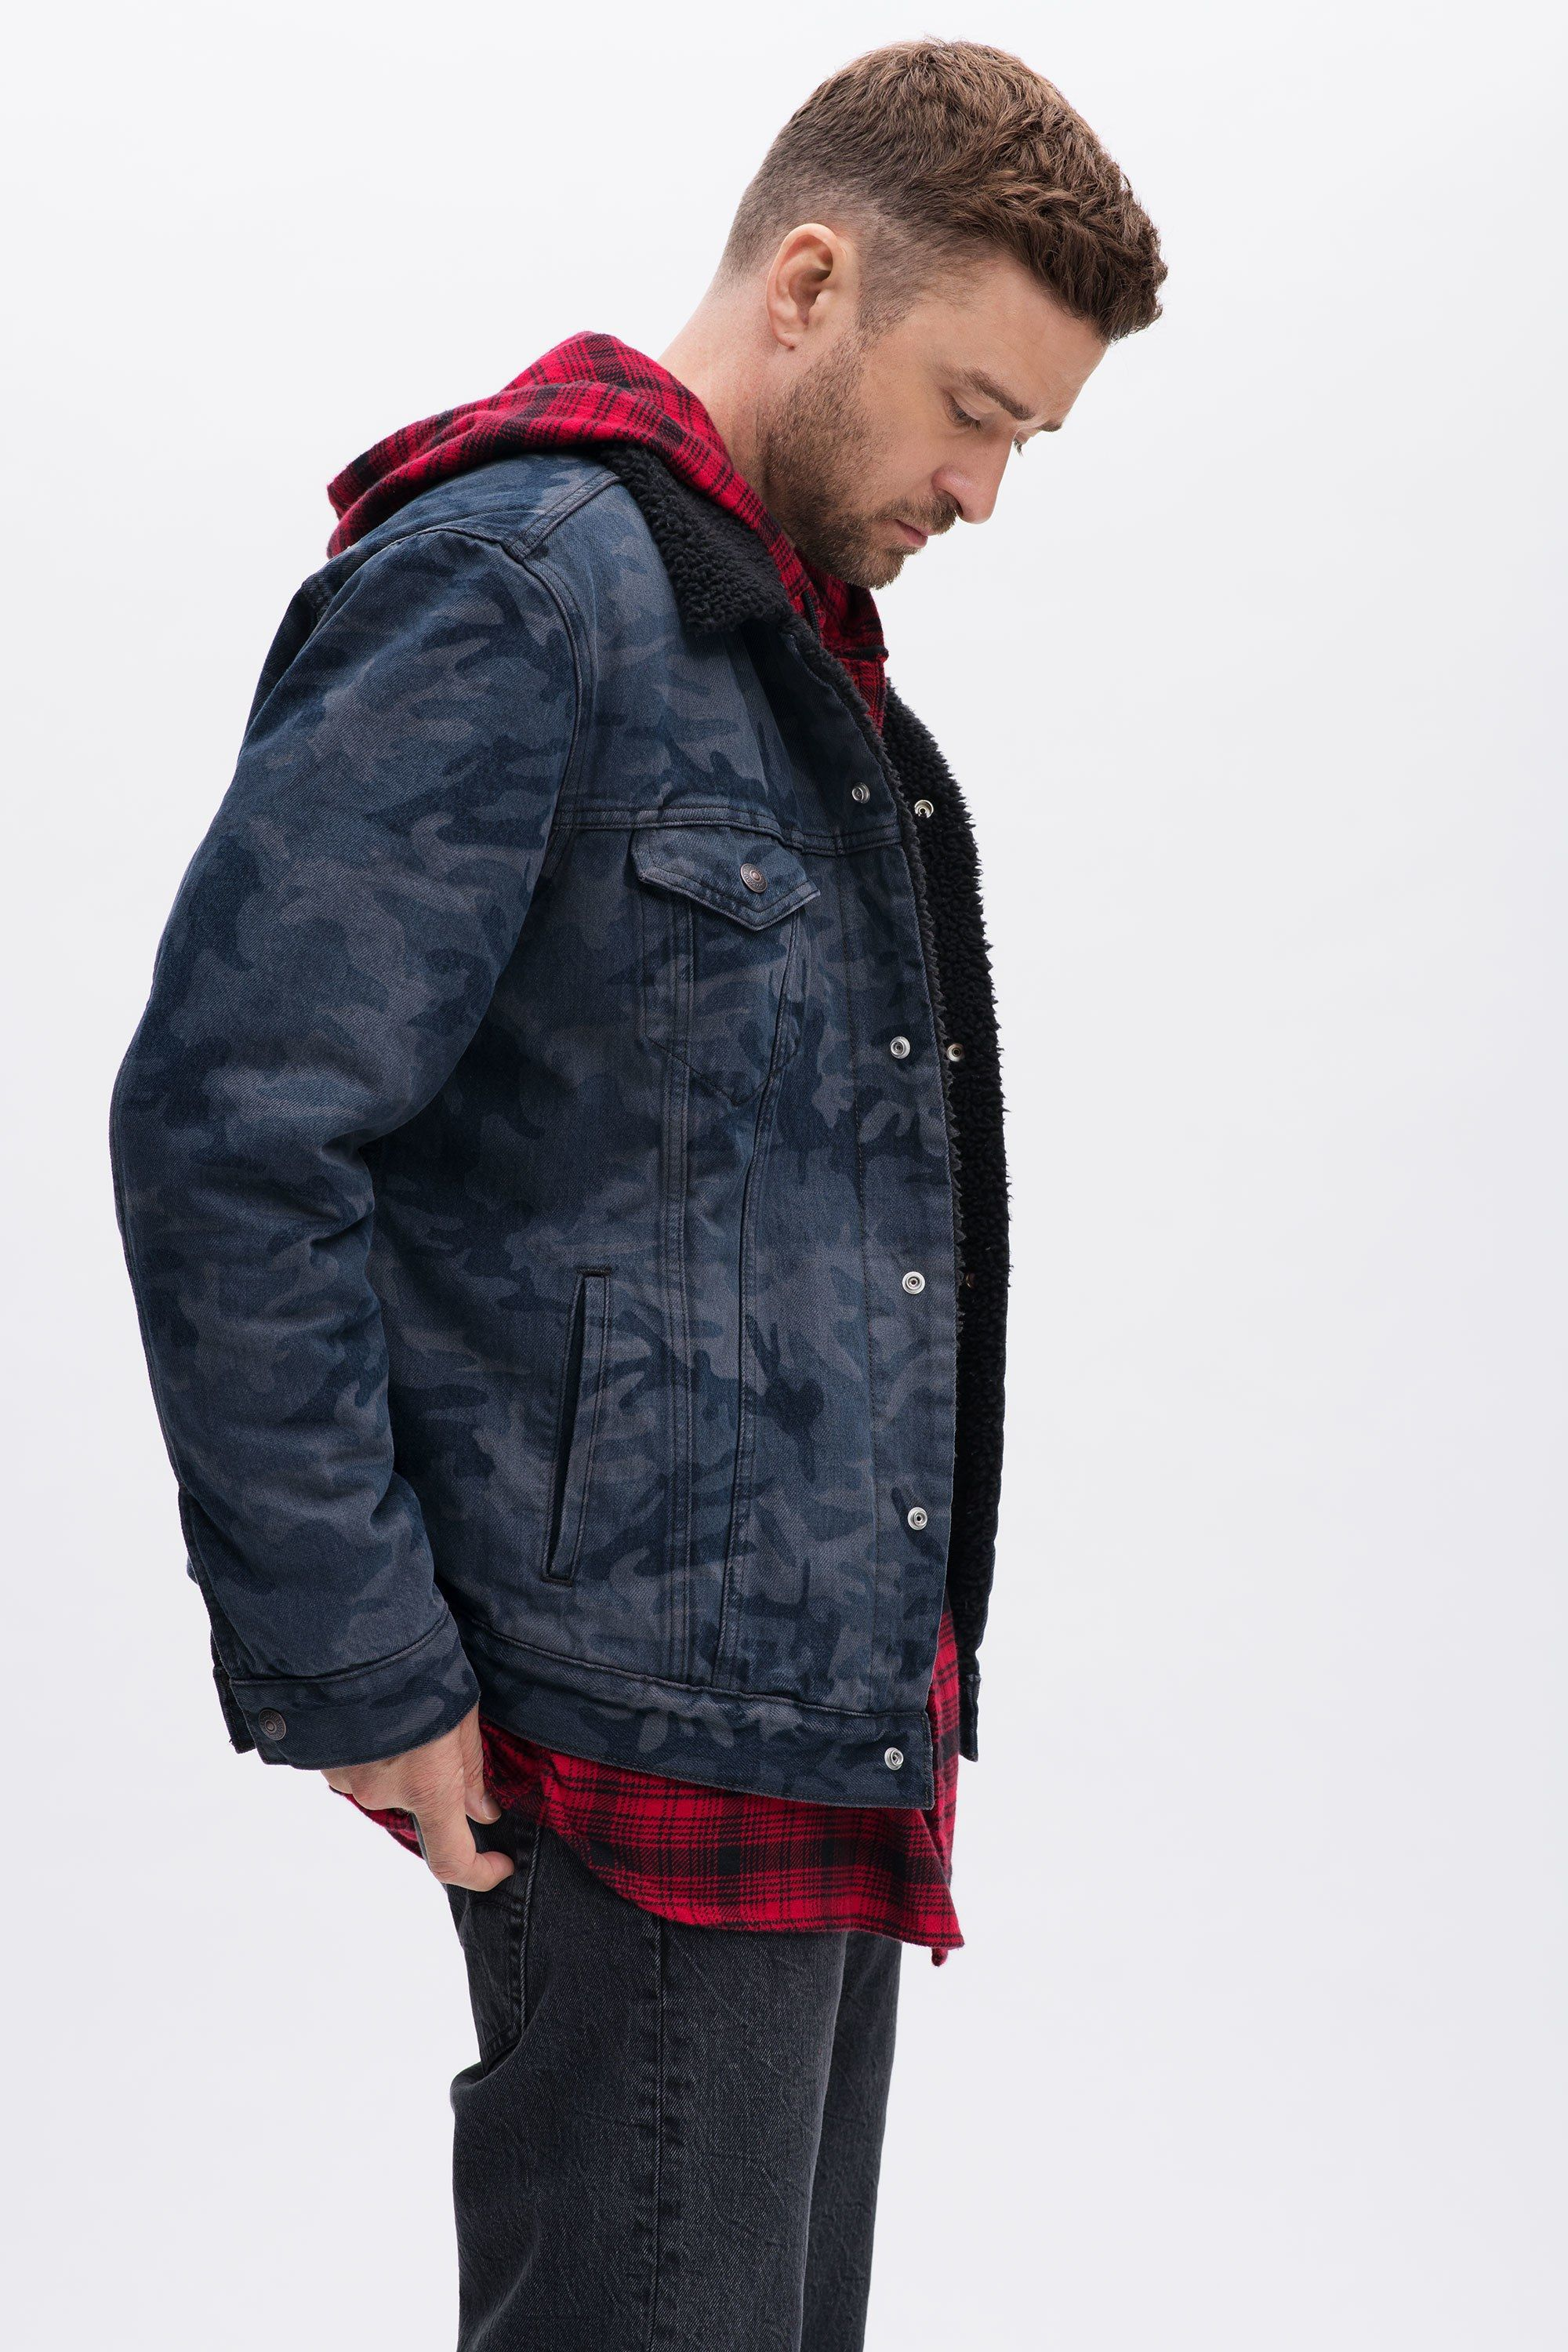 35bd9da9c71  Celebrities  fw2018  fall2018  CasualWear  MensFashion  winter2019   MensCasualWear Justin Timberlake  Debuts  Levi s  Collaboration  Campaign   Collection ...